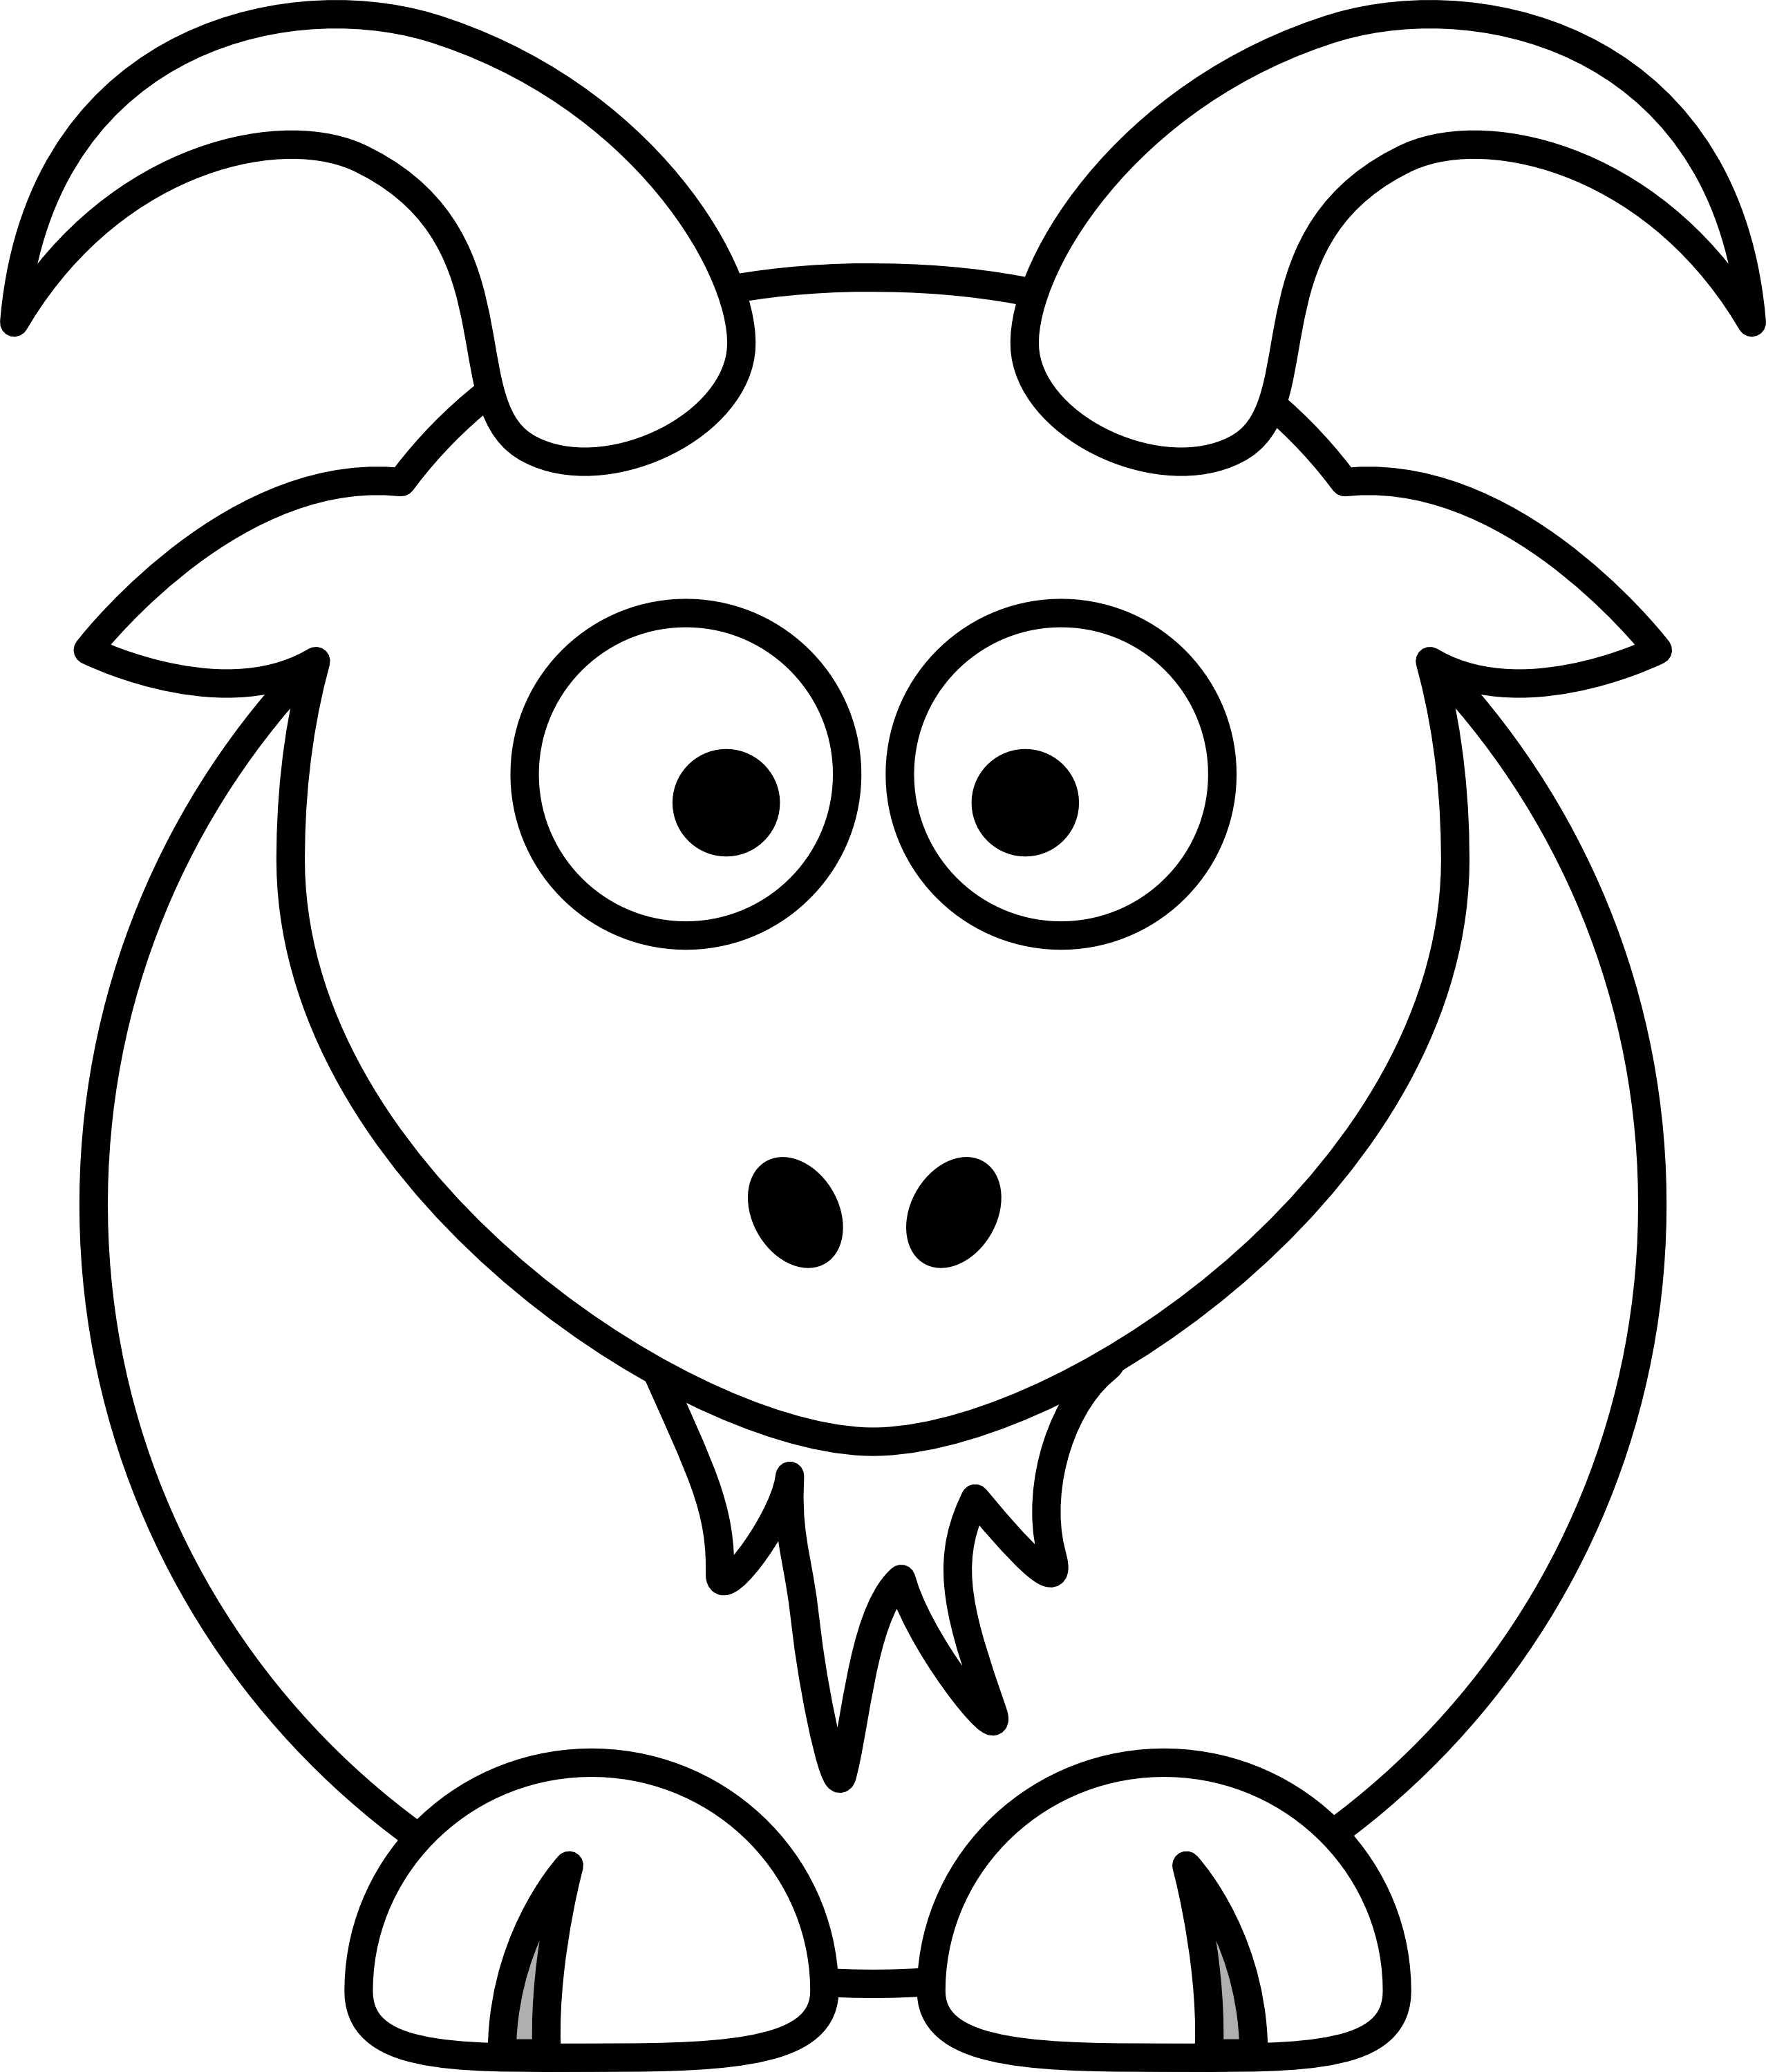 Black & White clipart #7, Download drawings